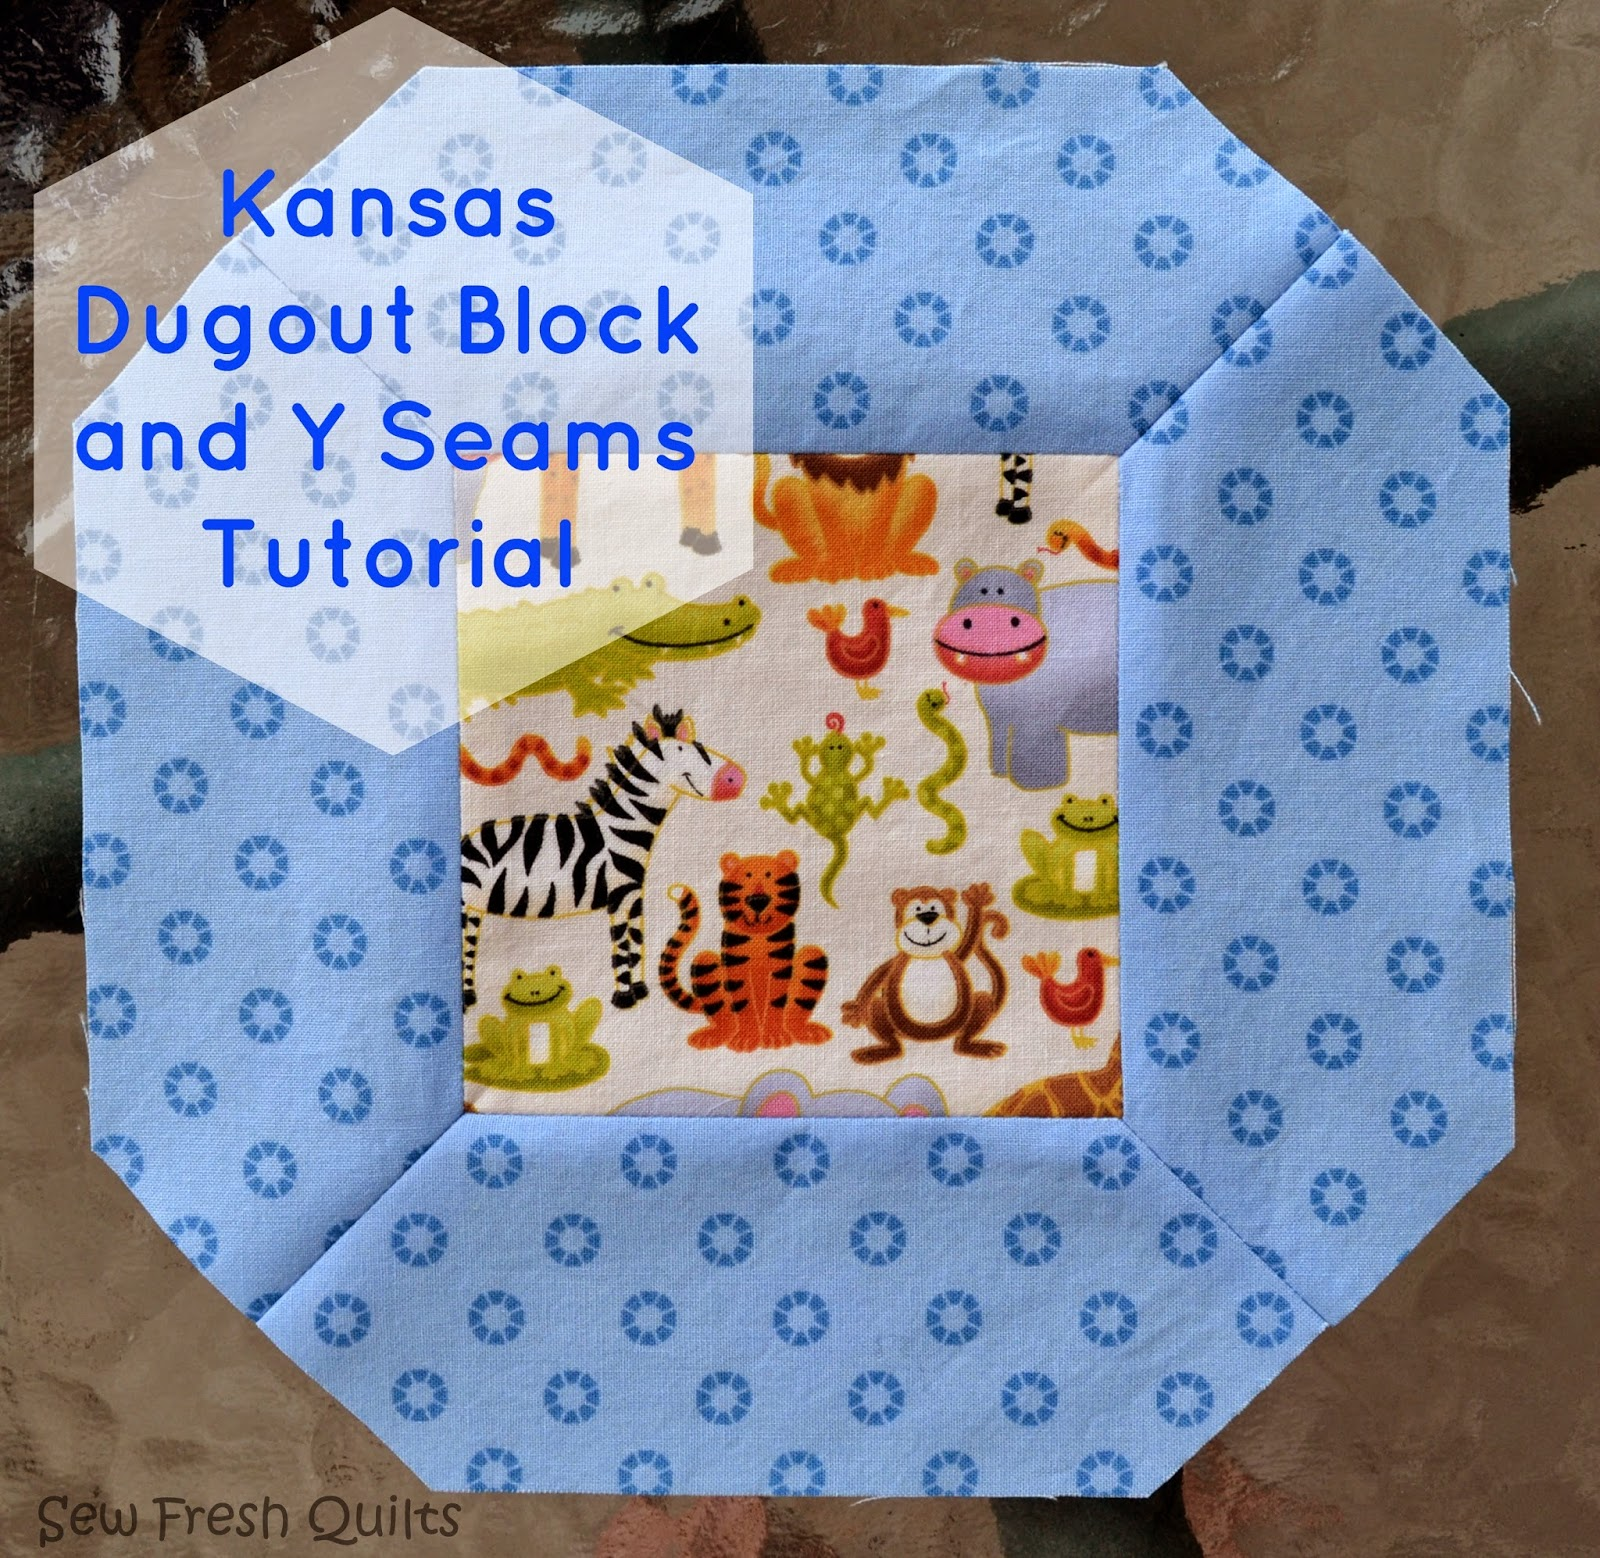 Kansas Dugout Block and Y Seams tutorial